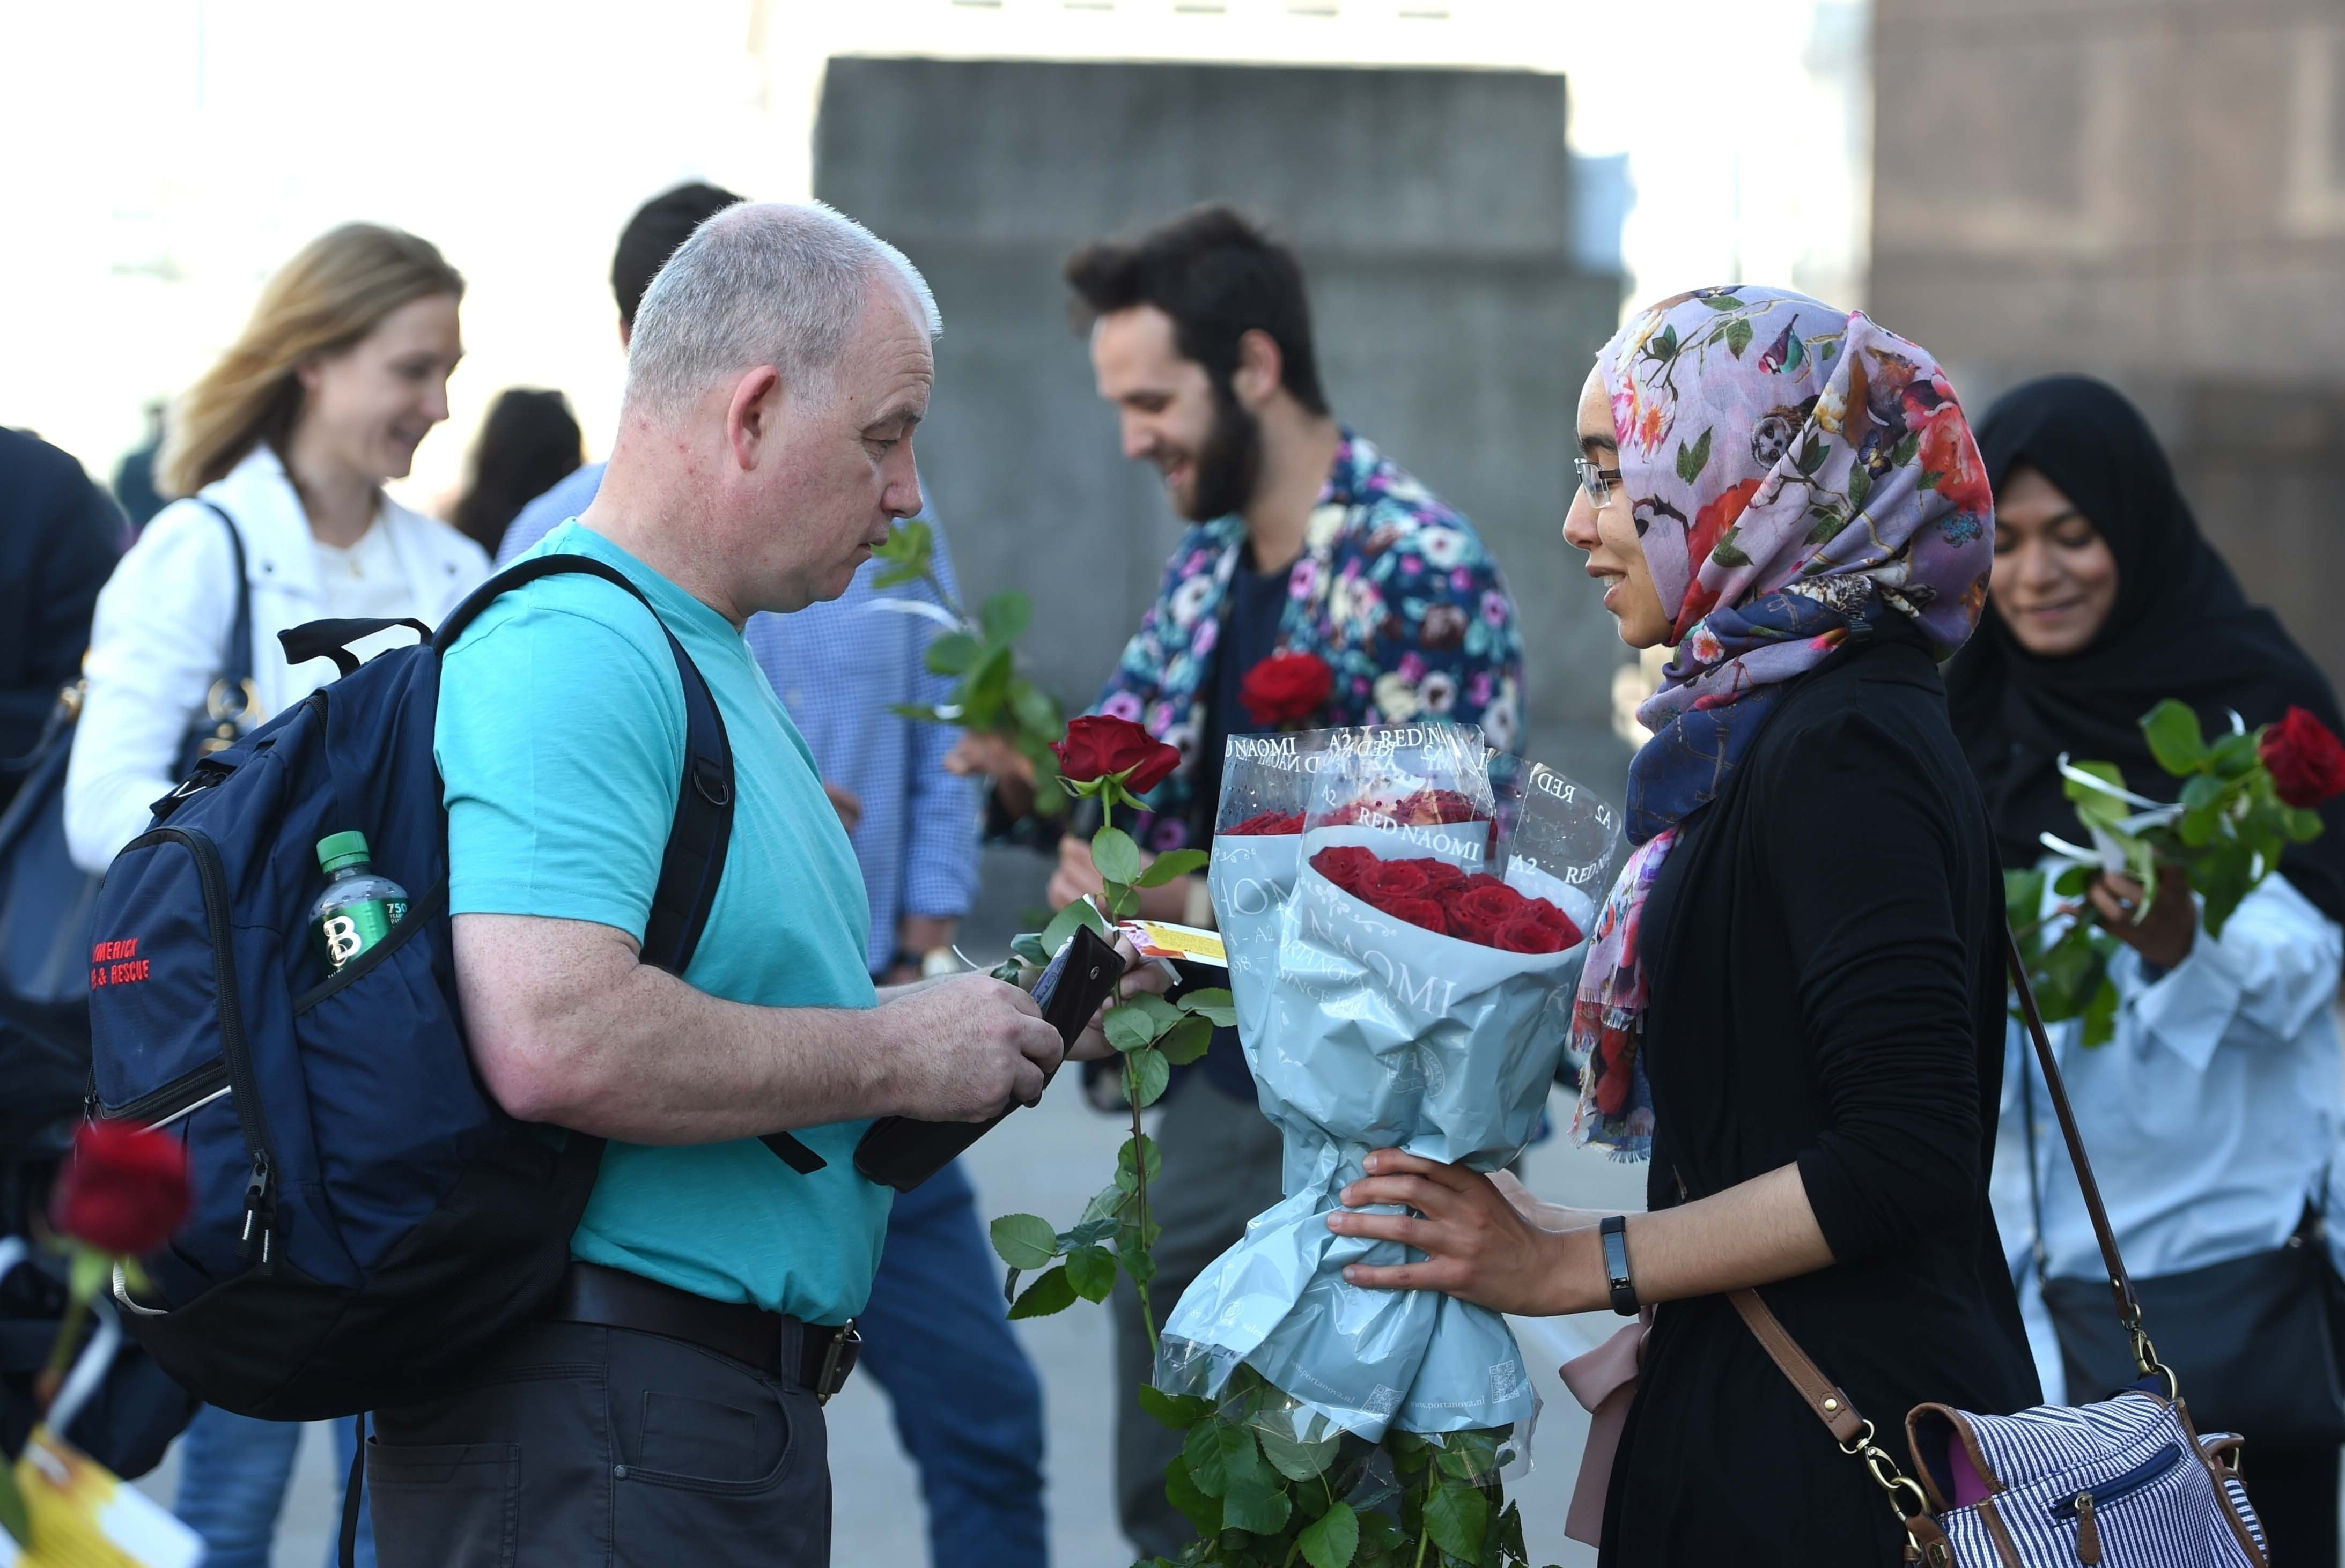 Muslims Hand Out Roses On London Bridge In Gesture Of 'Love And